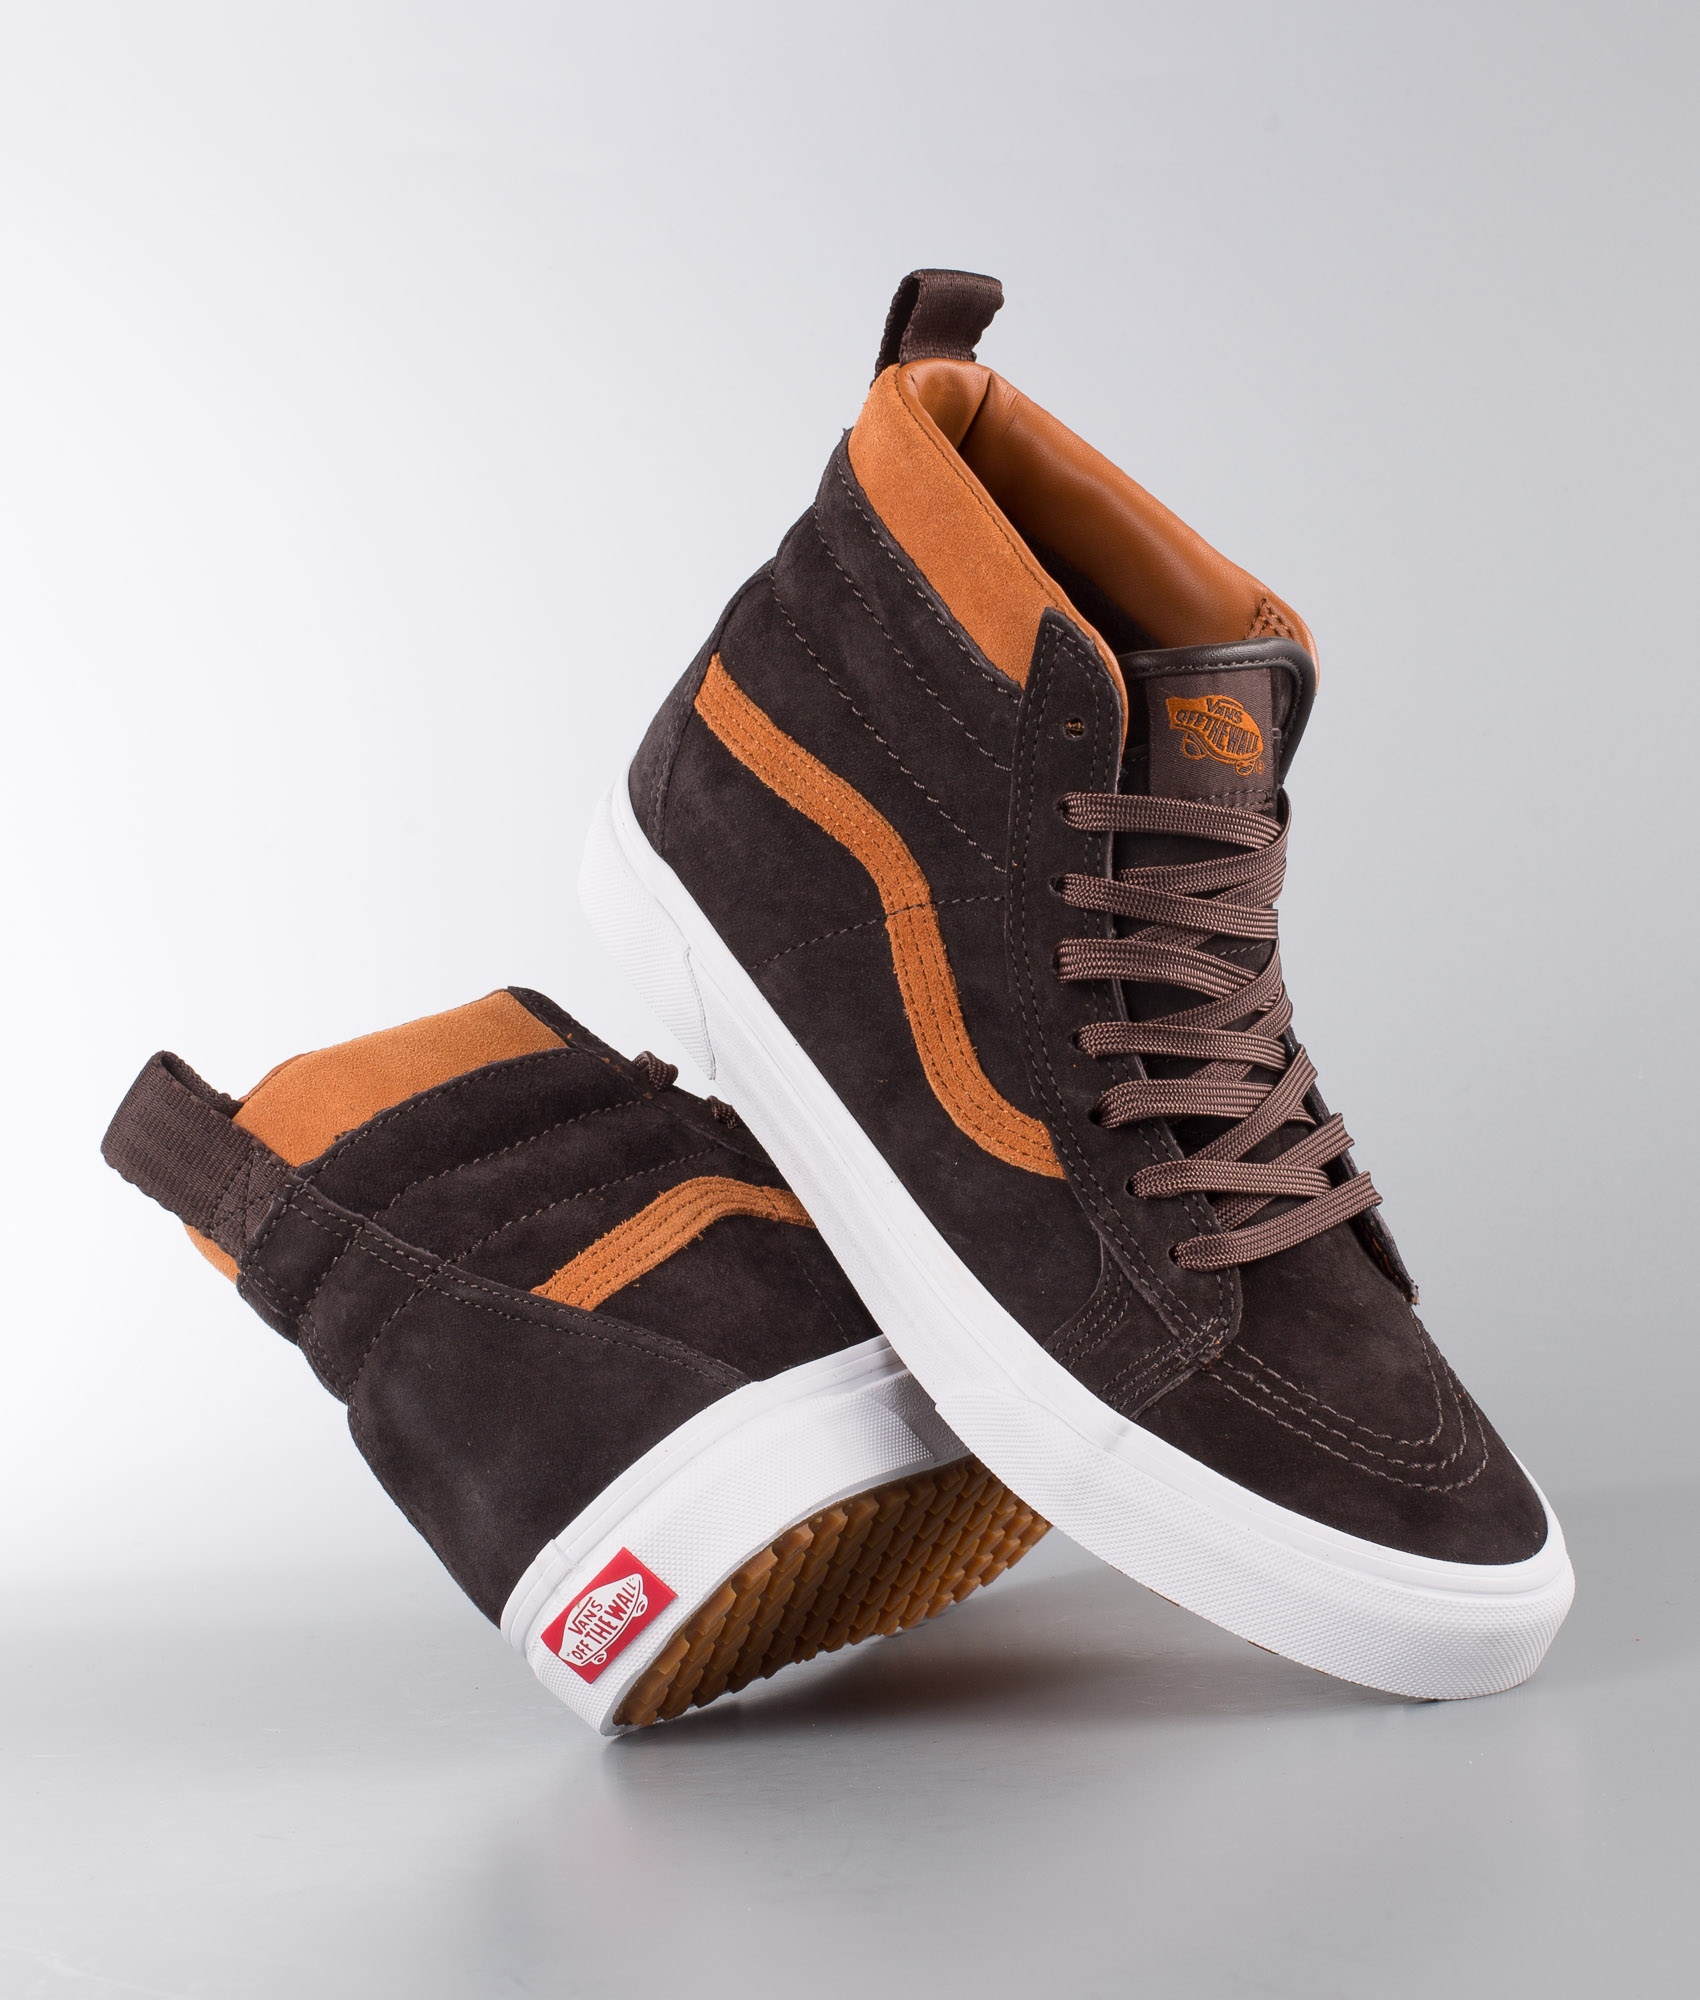 Vans Sk8-Hi Mte Shoes (Mte) Suede/Chocolate Torte